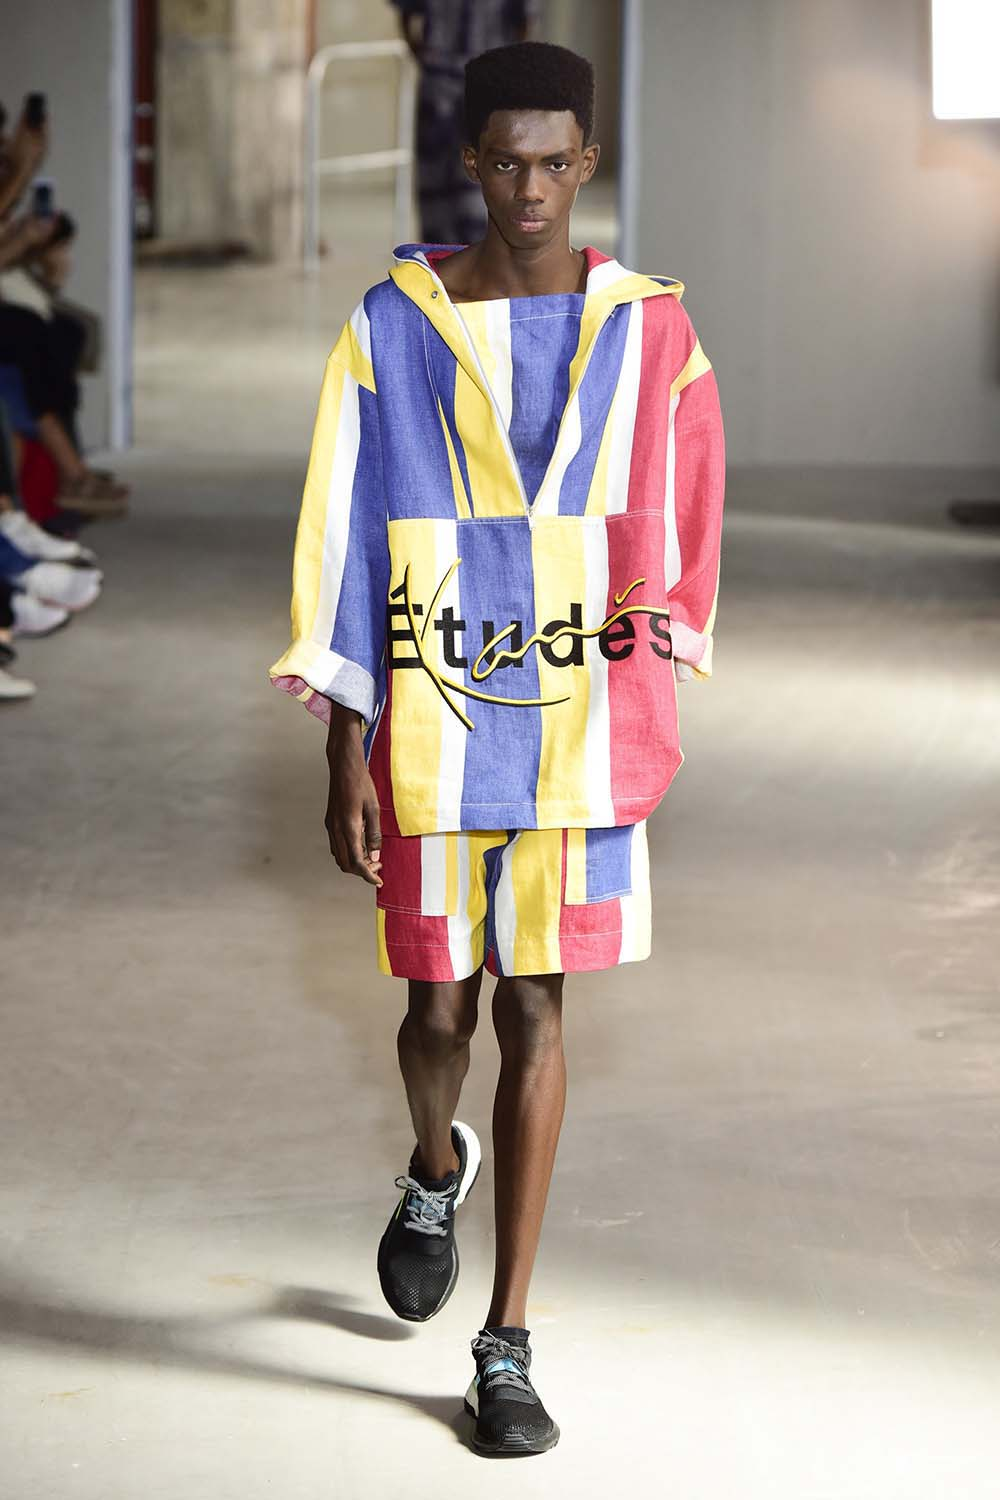 Etudes Spring Summer 2019 Presetnation in Paris at Paris Fashion